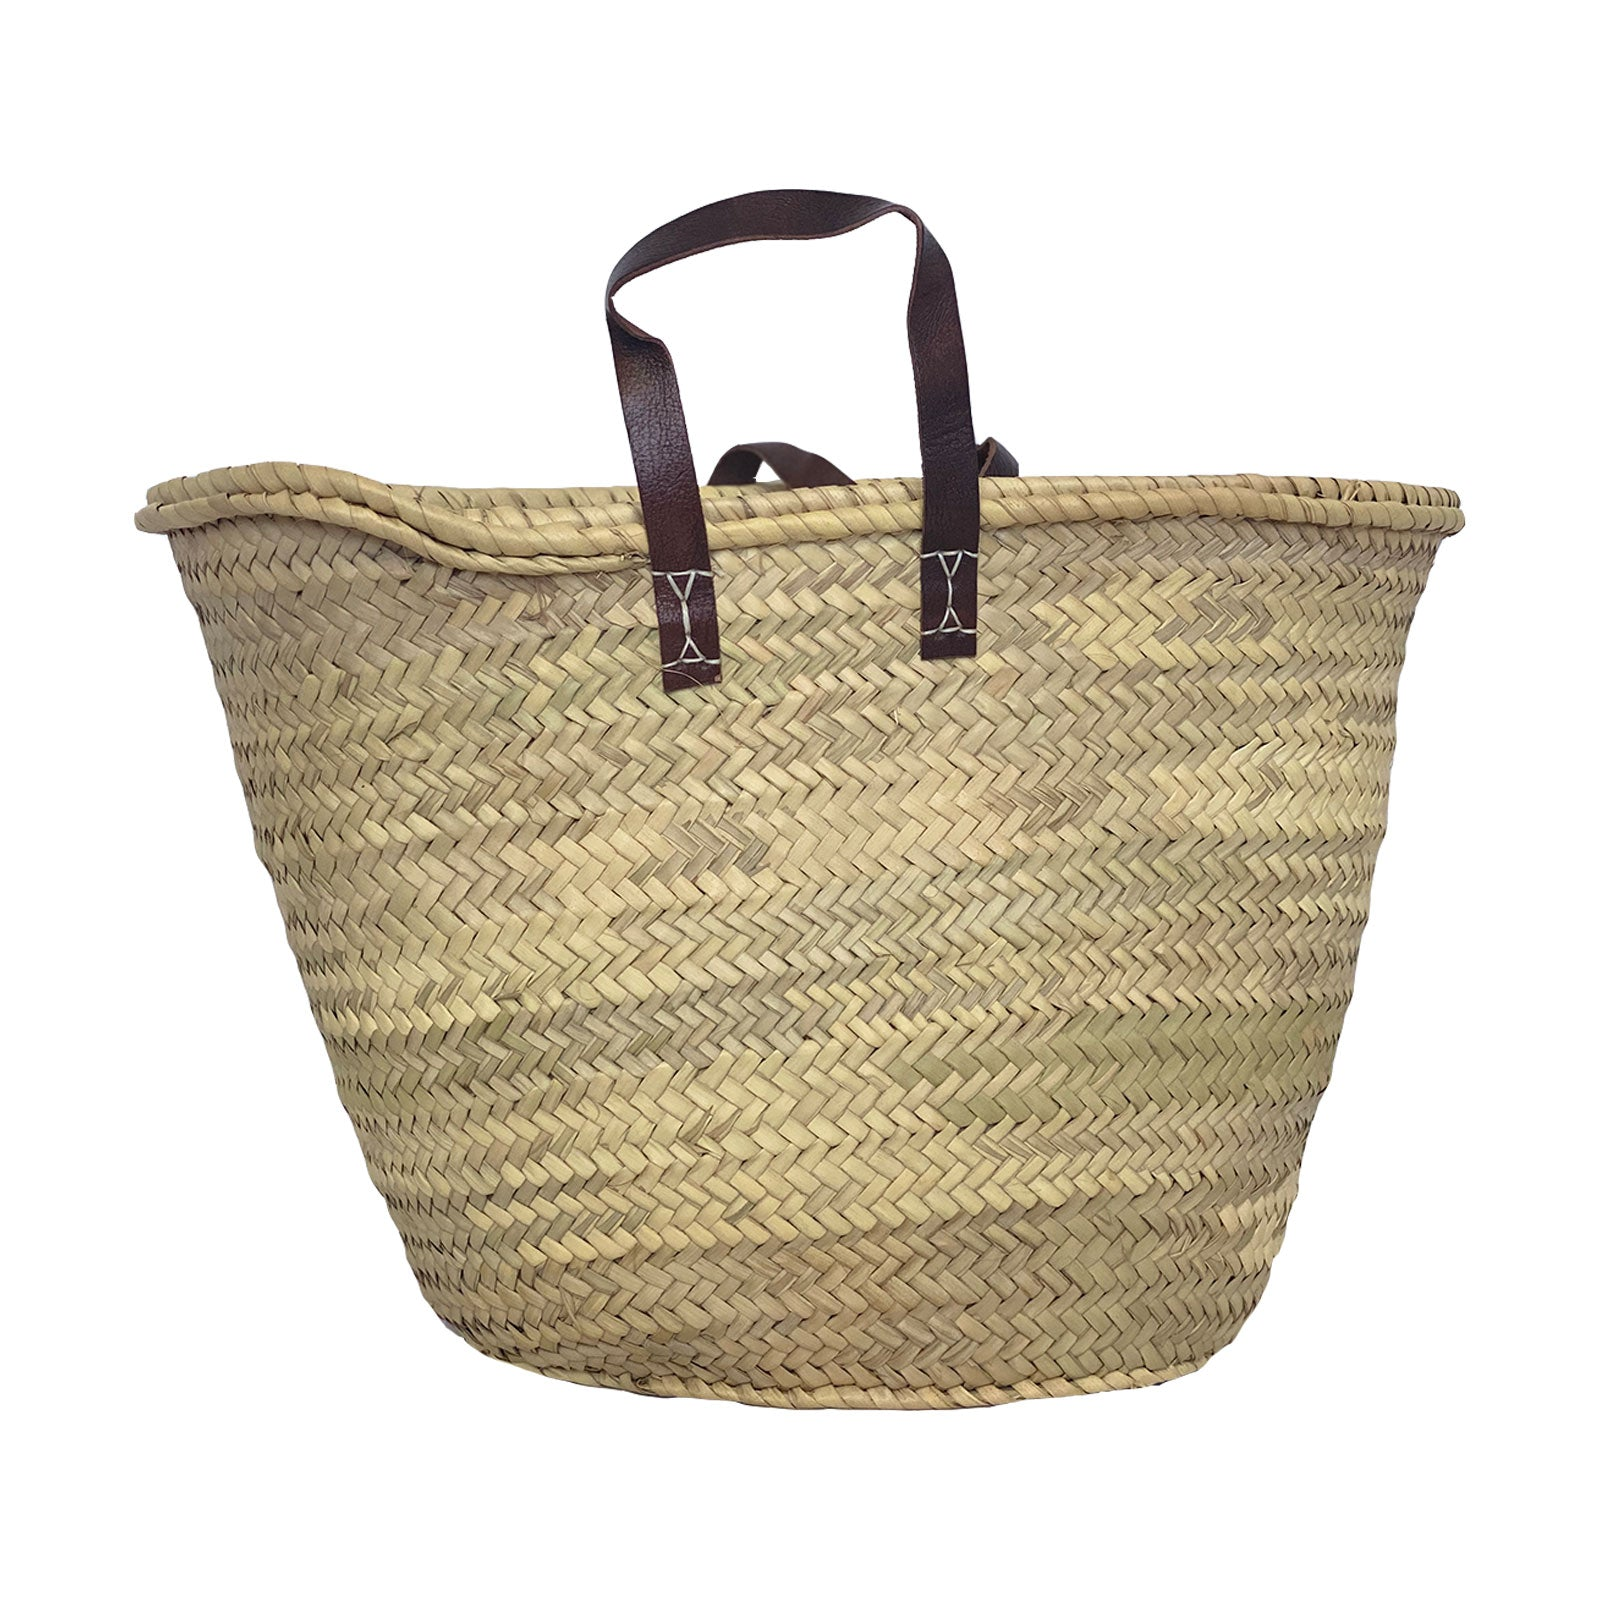 Basket Tote With Leather Handles